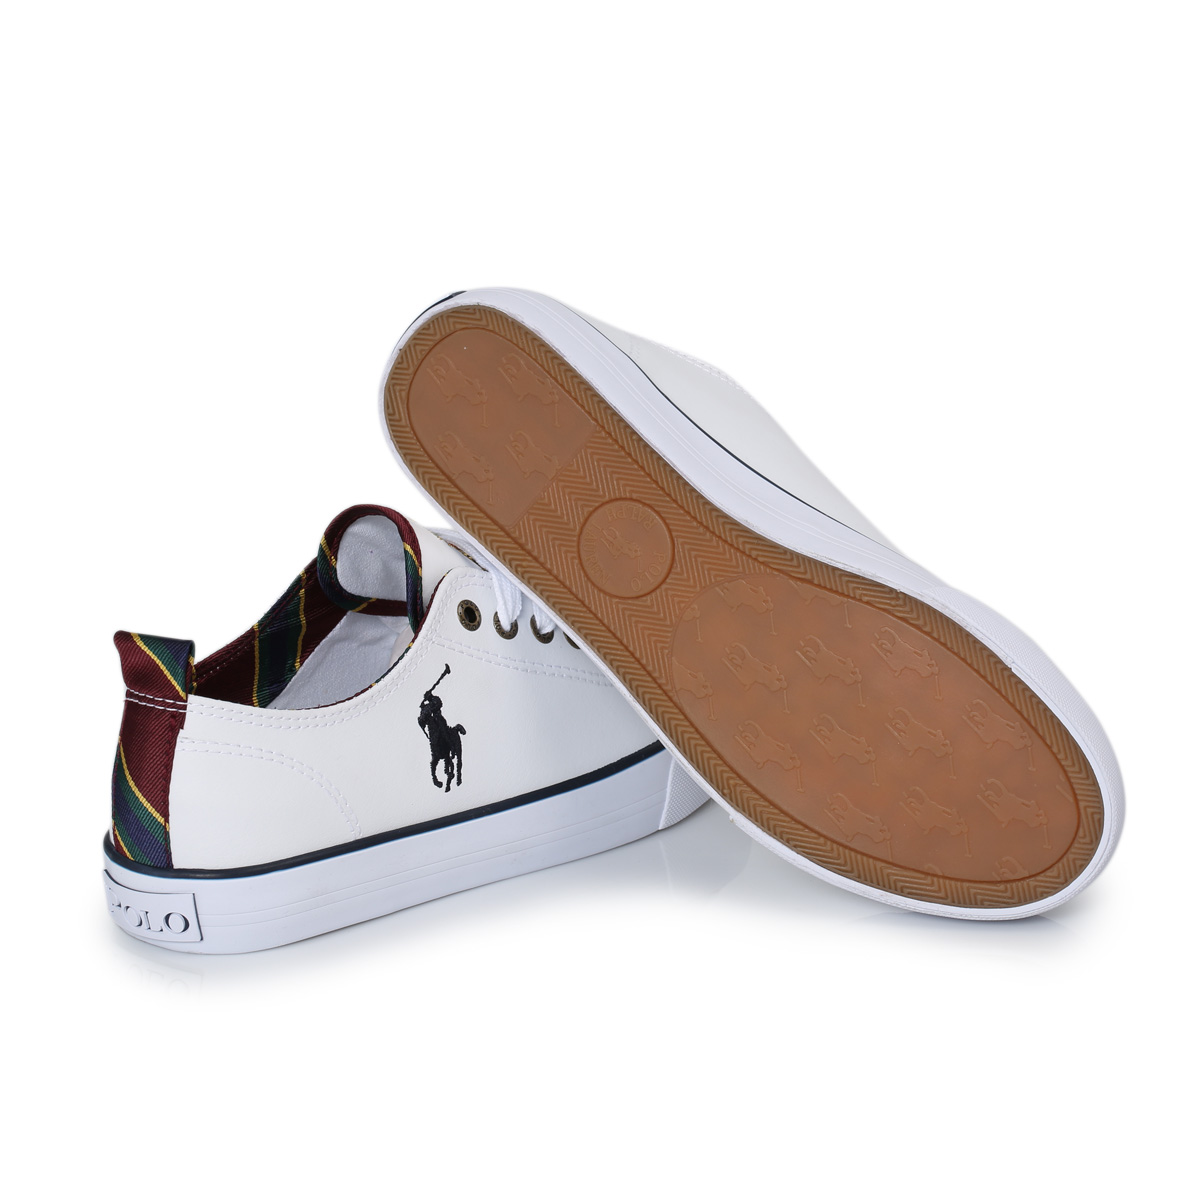 Polo Ralph Lauren Breeana Women's Casual Shoes | FinishLine.com